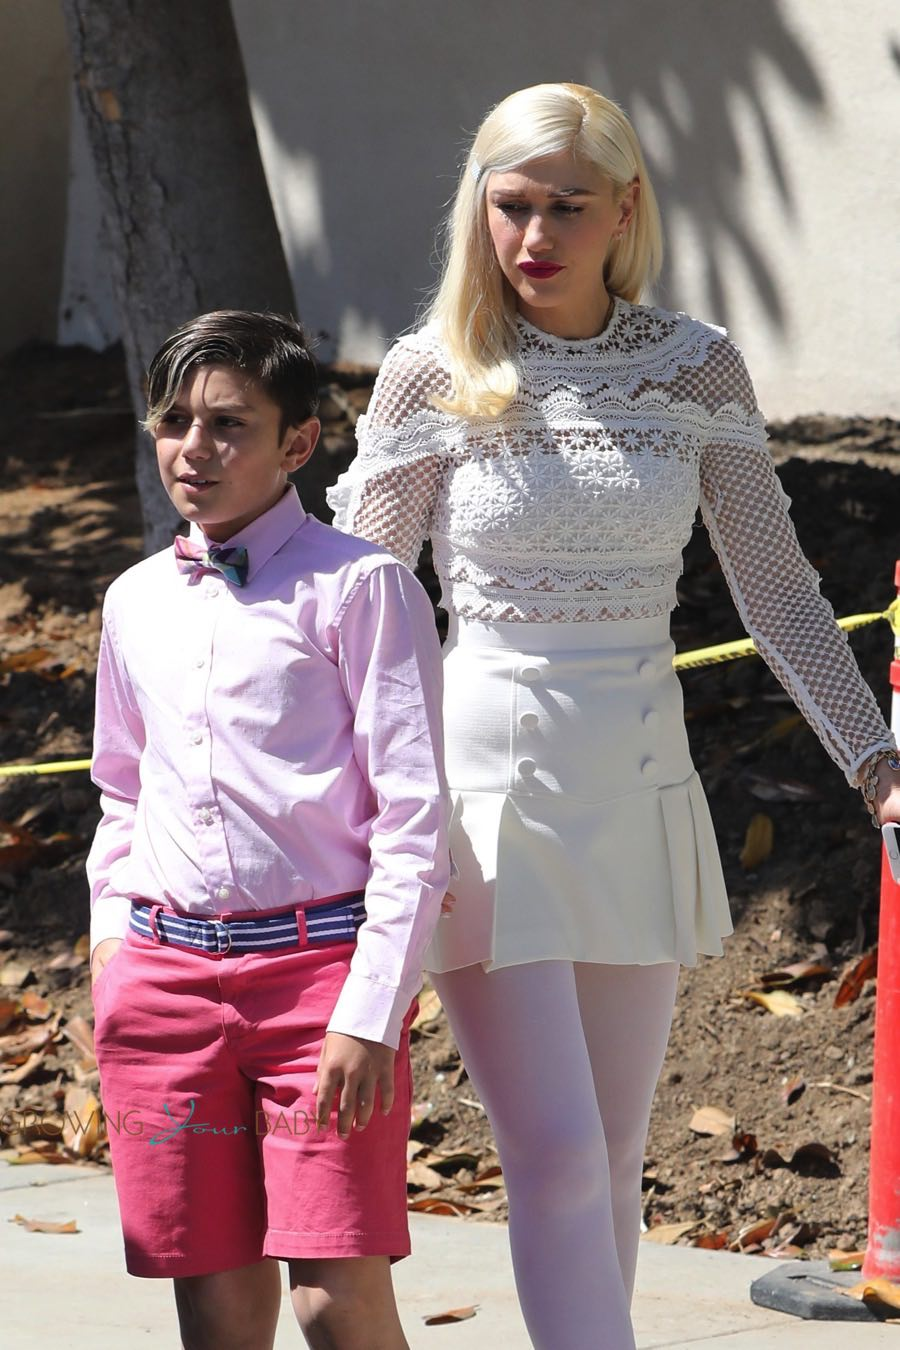 Gwen Stefani Leaves Sunday Service With Her Son Kingston